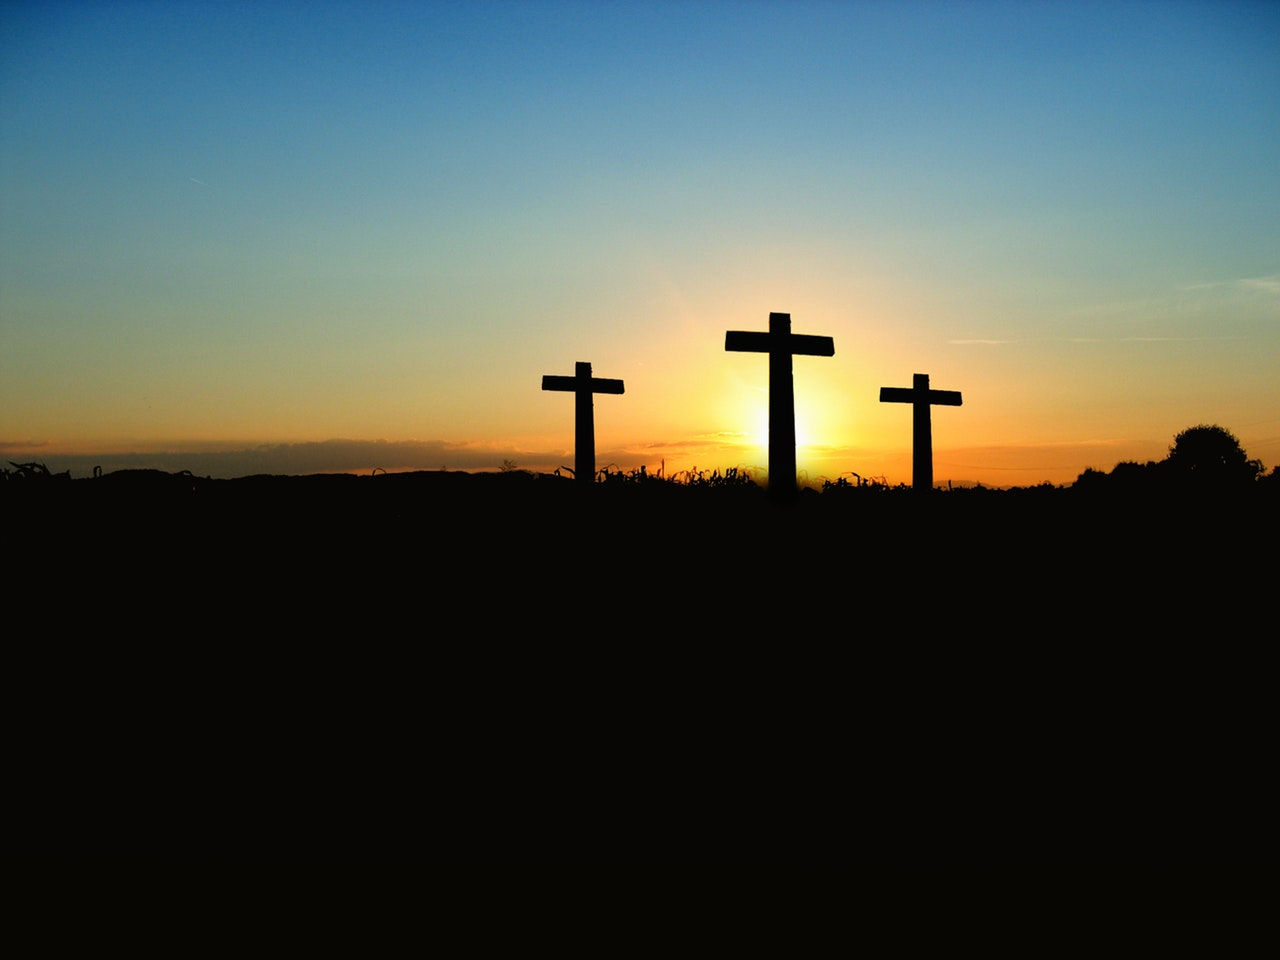 Silhouette of 3 crosses under the blue sky